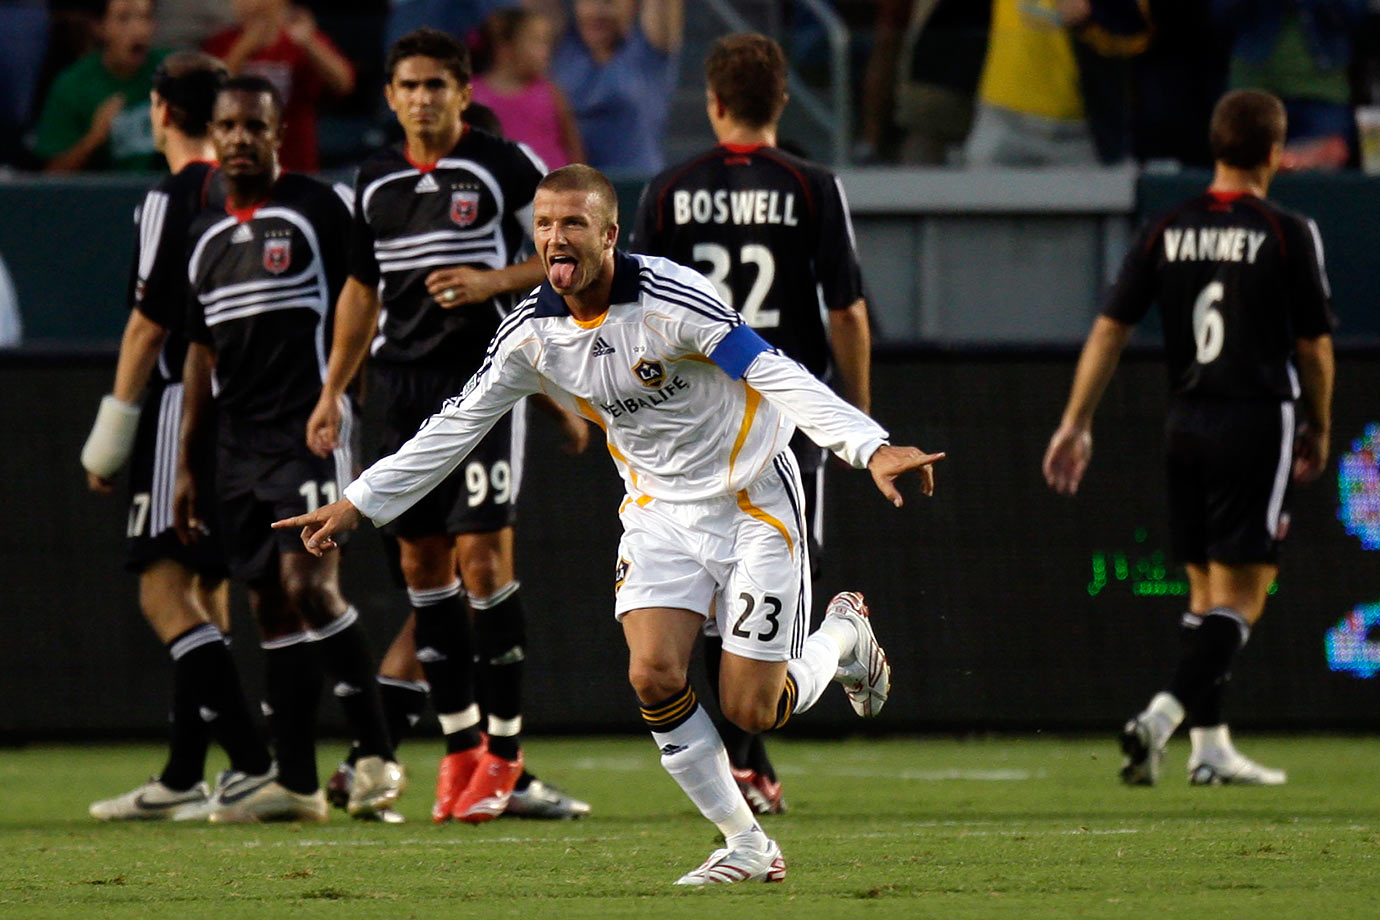 On Aug. 15, 2007, a week after his MLS debut, Beckham and the Galaxy faced off against D.C. United in the SuperLiga semifinals. It was a game of firsts for Beckham: first start, first game as captain and first yellow card. He also recorded his first goal (off a free kick, of course) and assist. His efforts gave the Galaxy a 2-0 victory, earning them a birth in the final against Pachuca of Mexico.